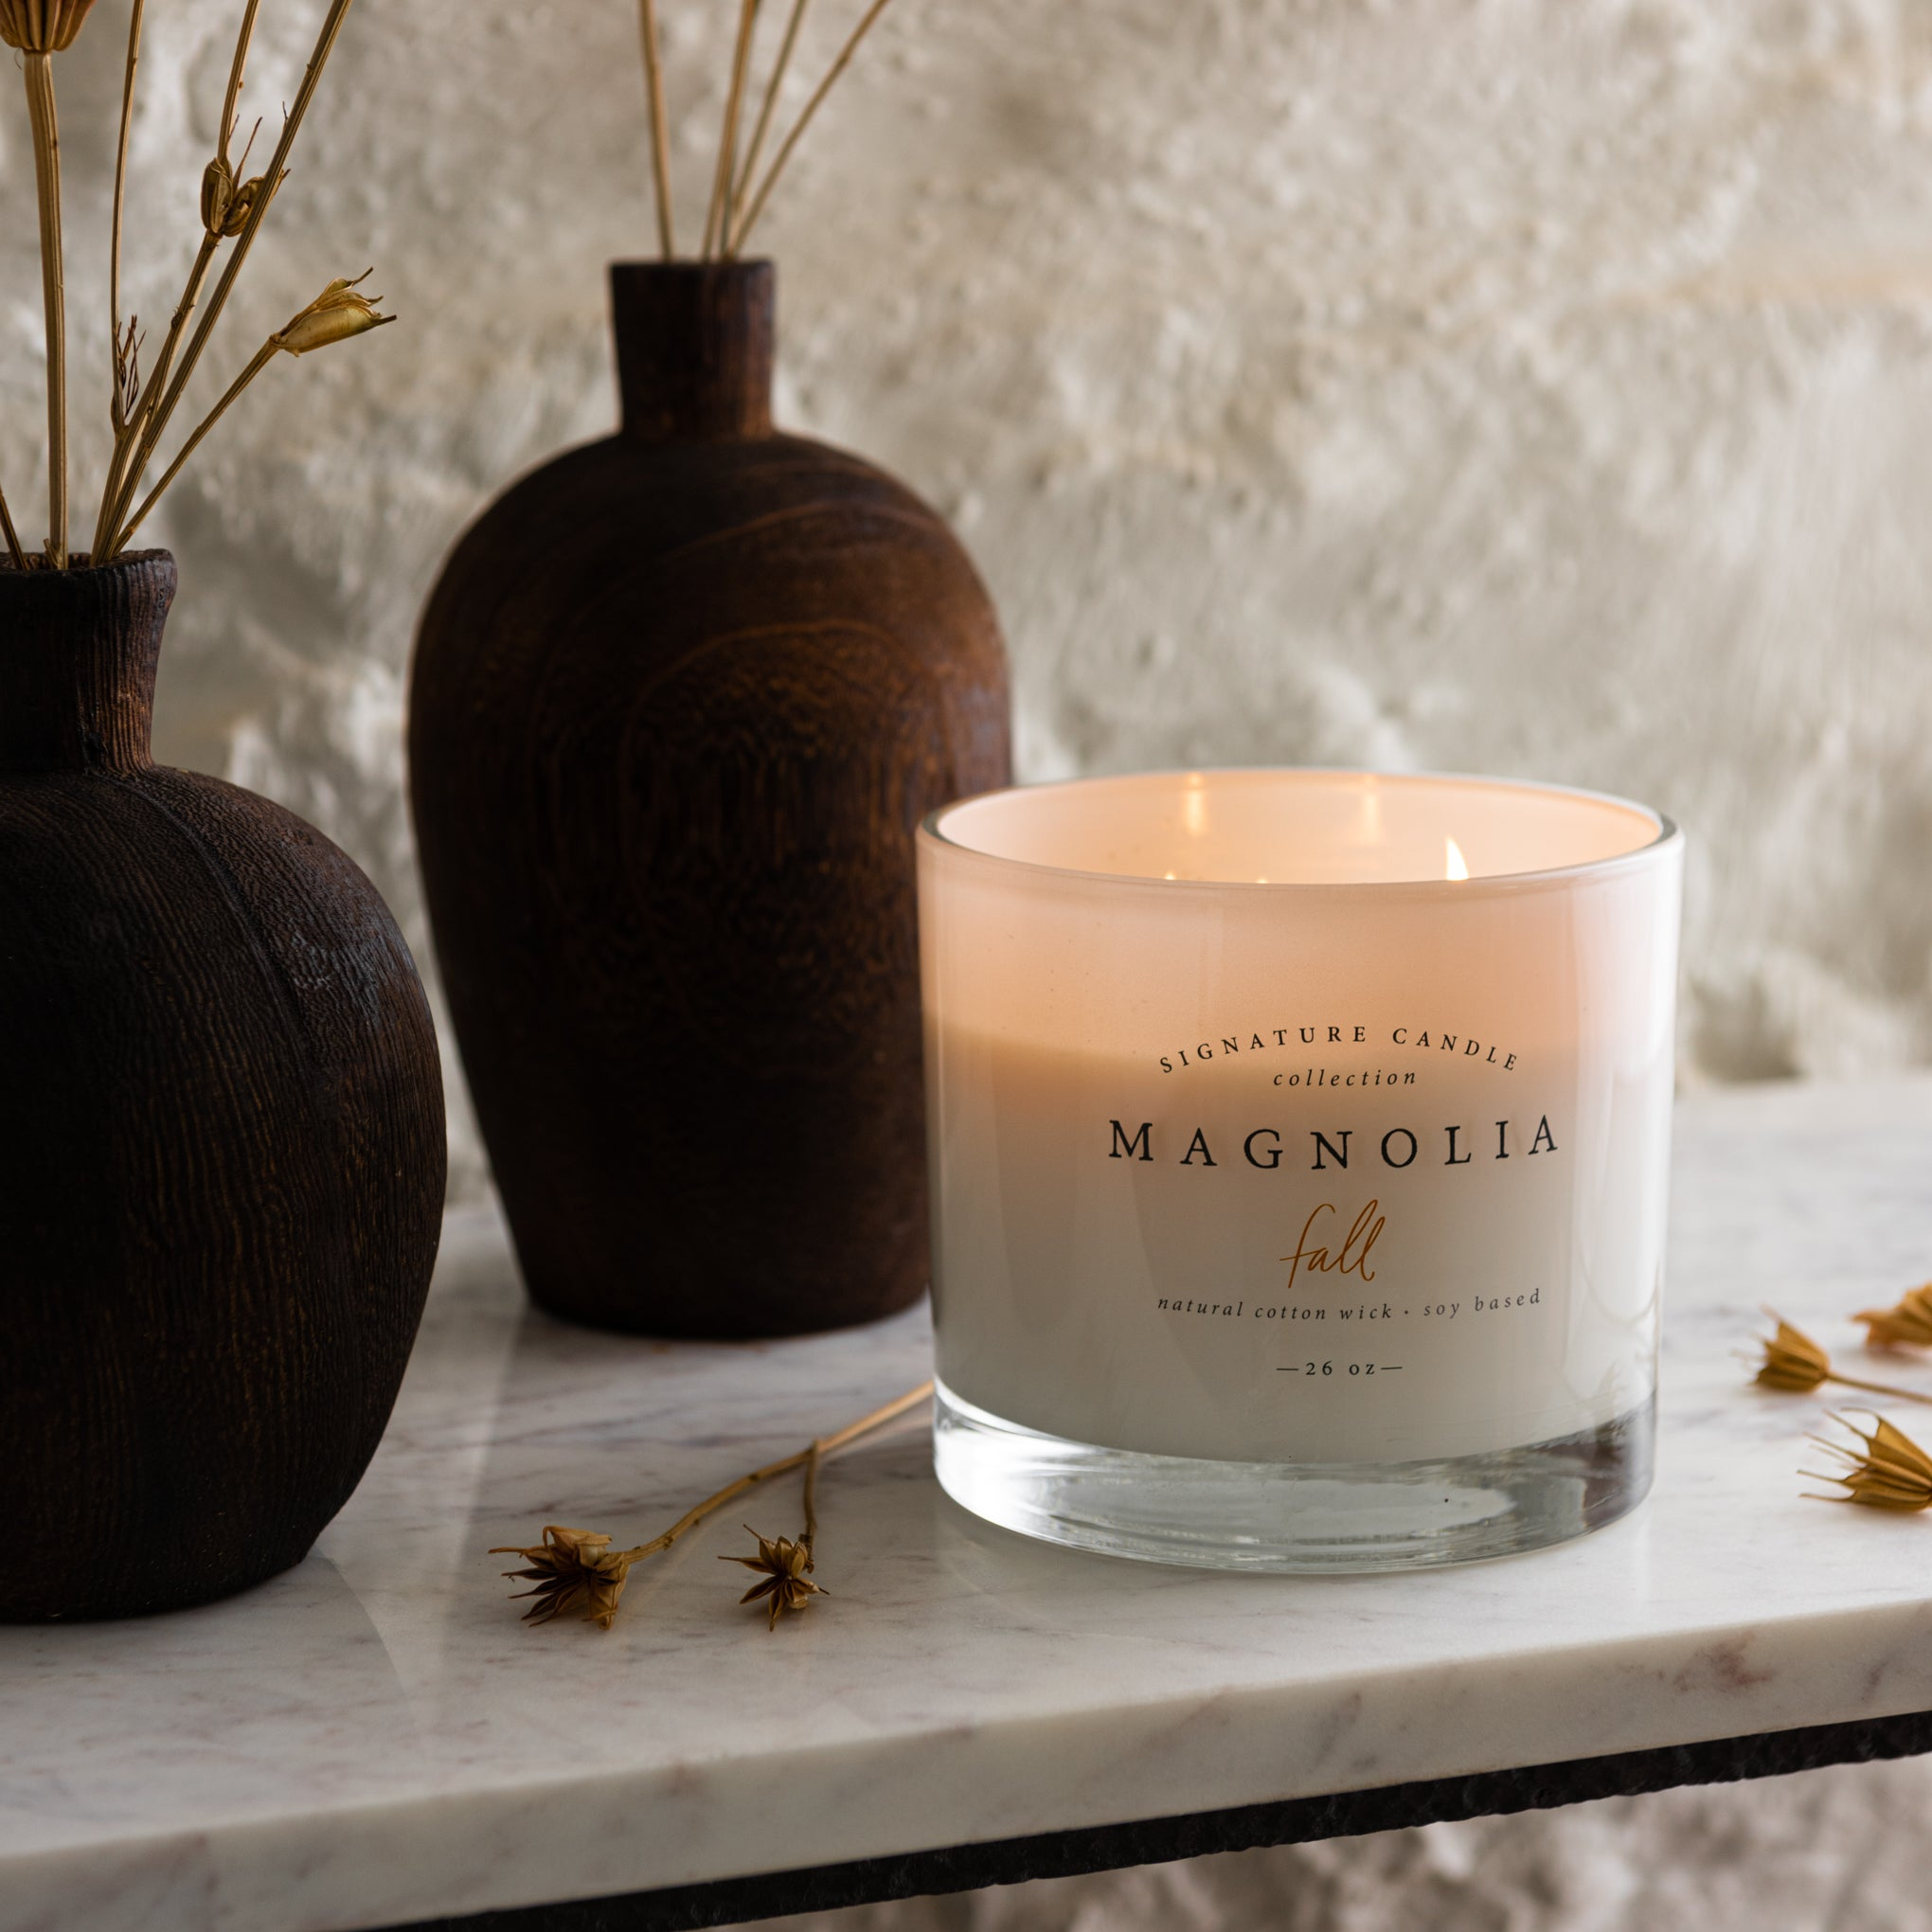 Fruity Floral Candle Peach Magnolia Scented Candle Fall Scented Candle Highly Scented Soy Candle Long Burning Candle Candle Gifts